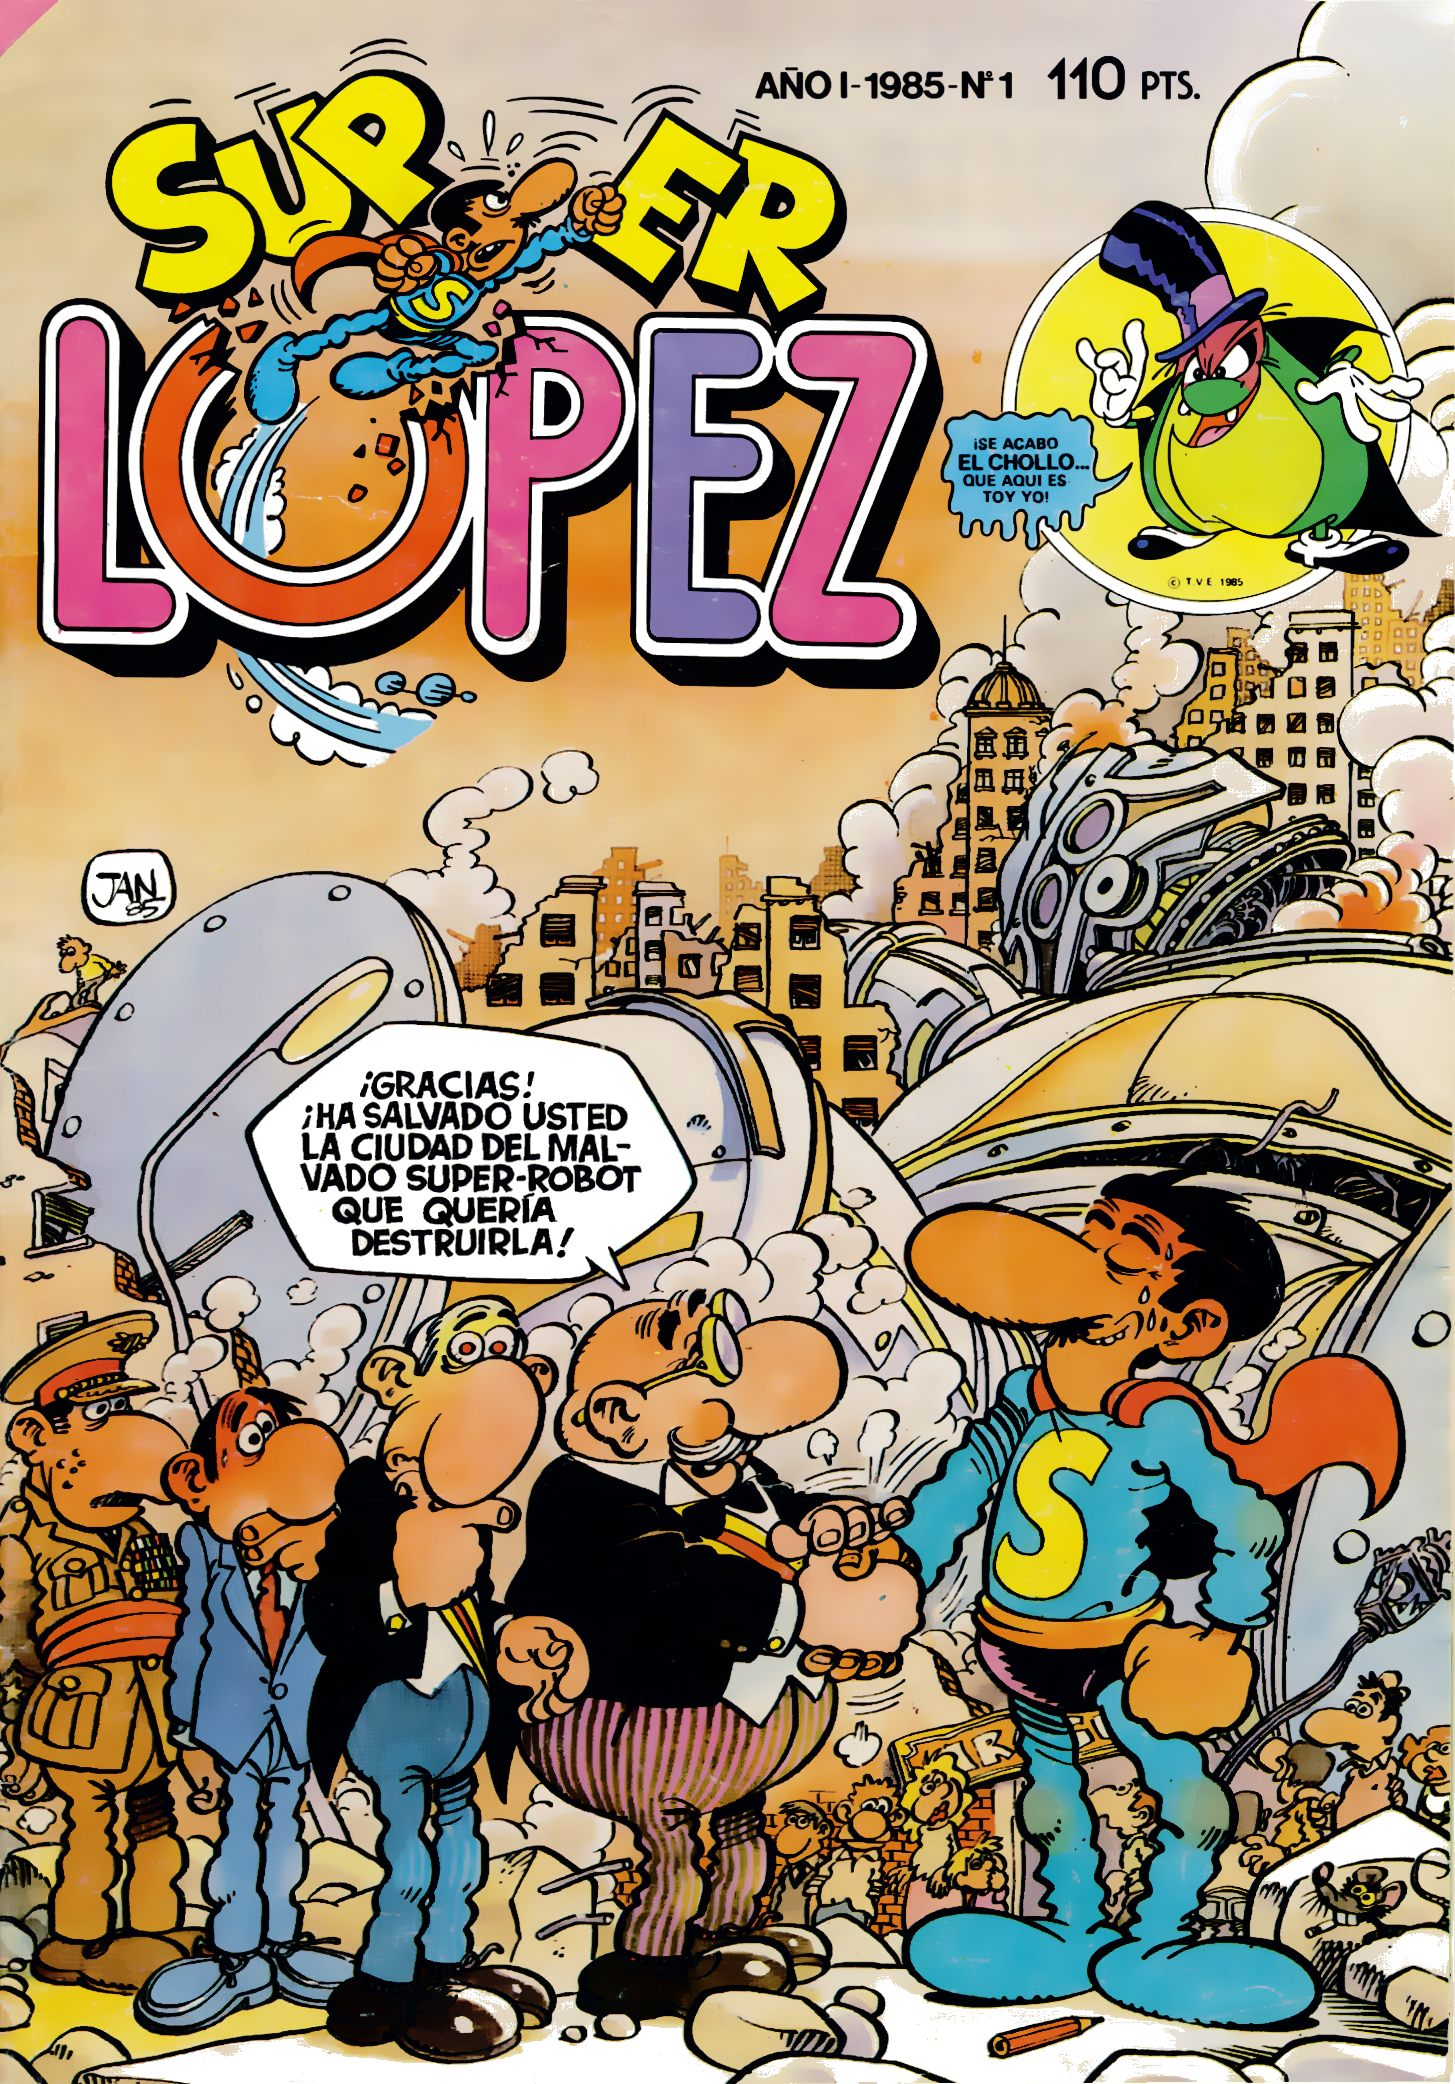 SuperLópez (Revista)